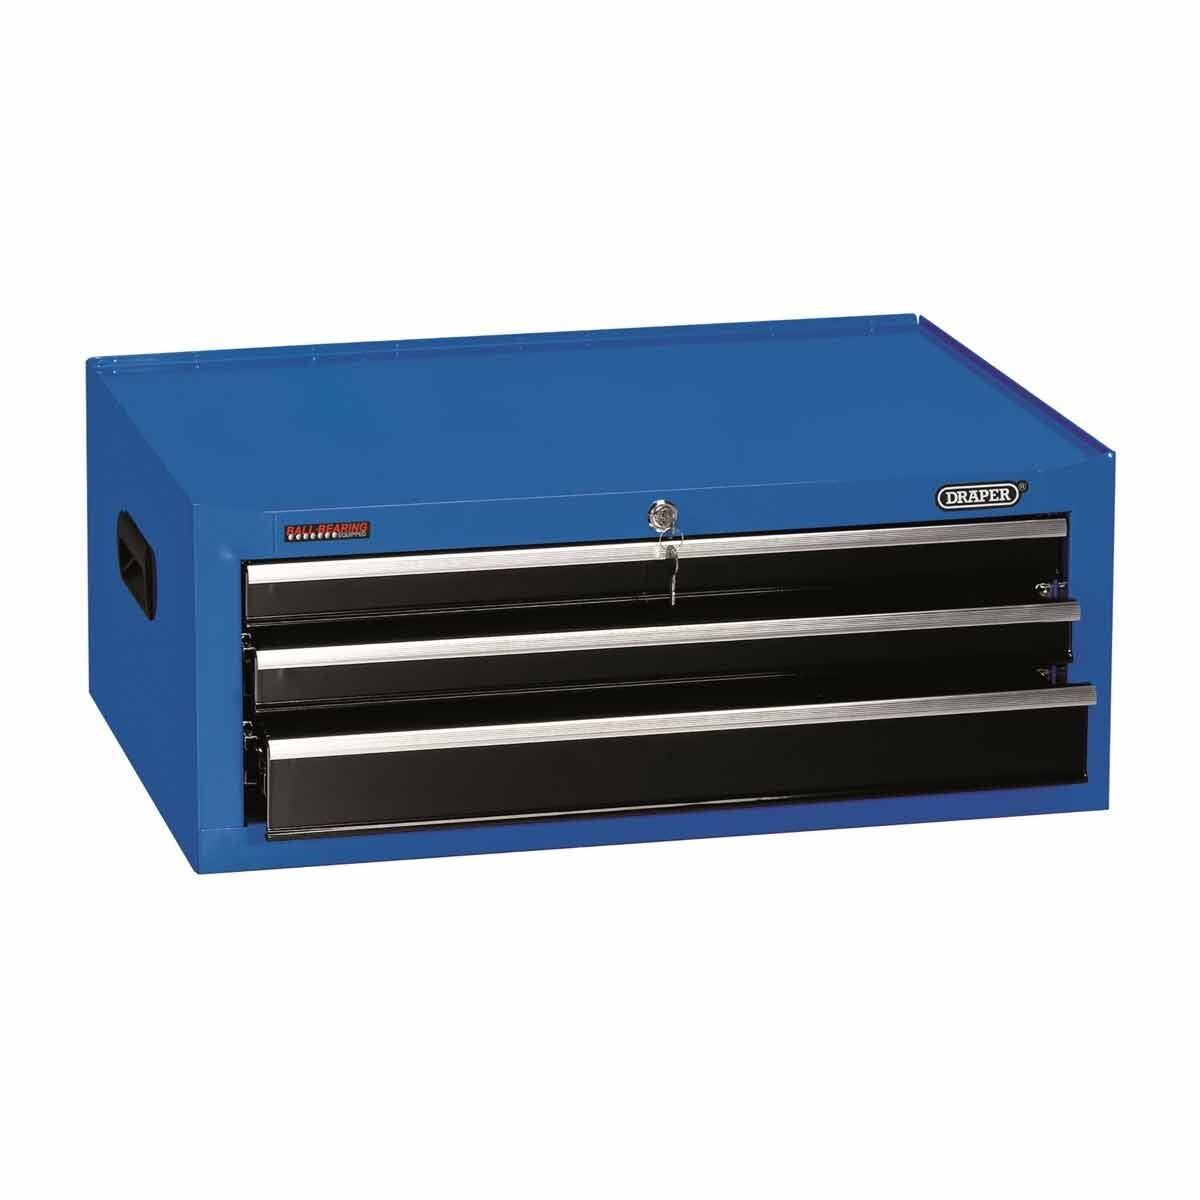 Draper 26 Inch Intermediate Tool Chest with 3 Drawers